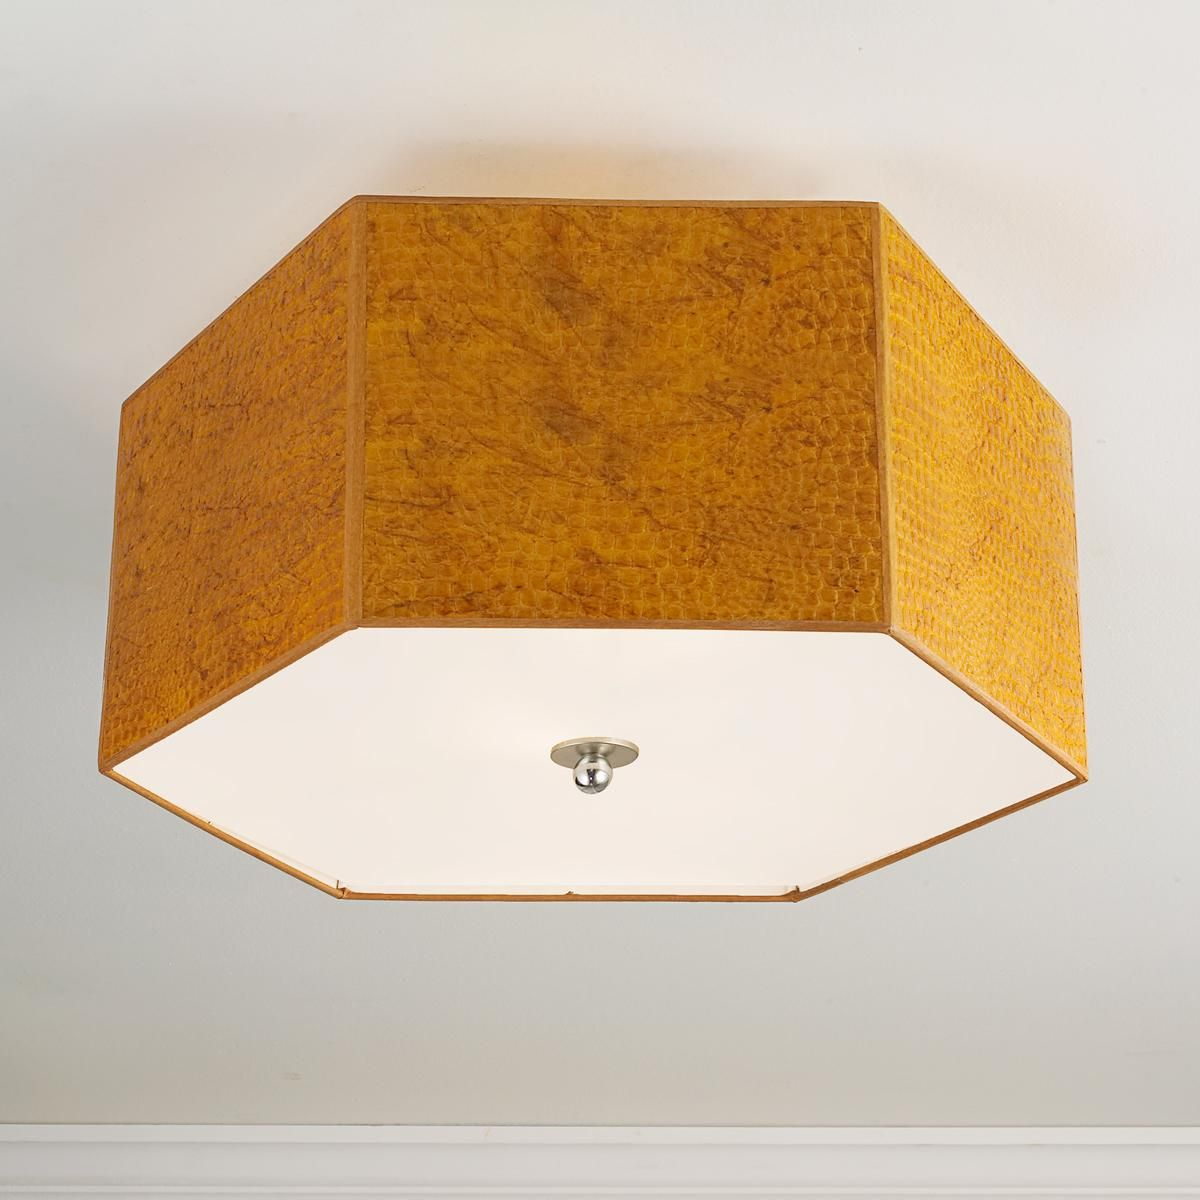 Crocodile Shade Ceiling Light Cover In